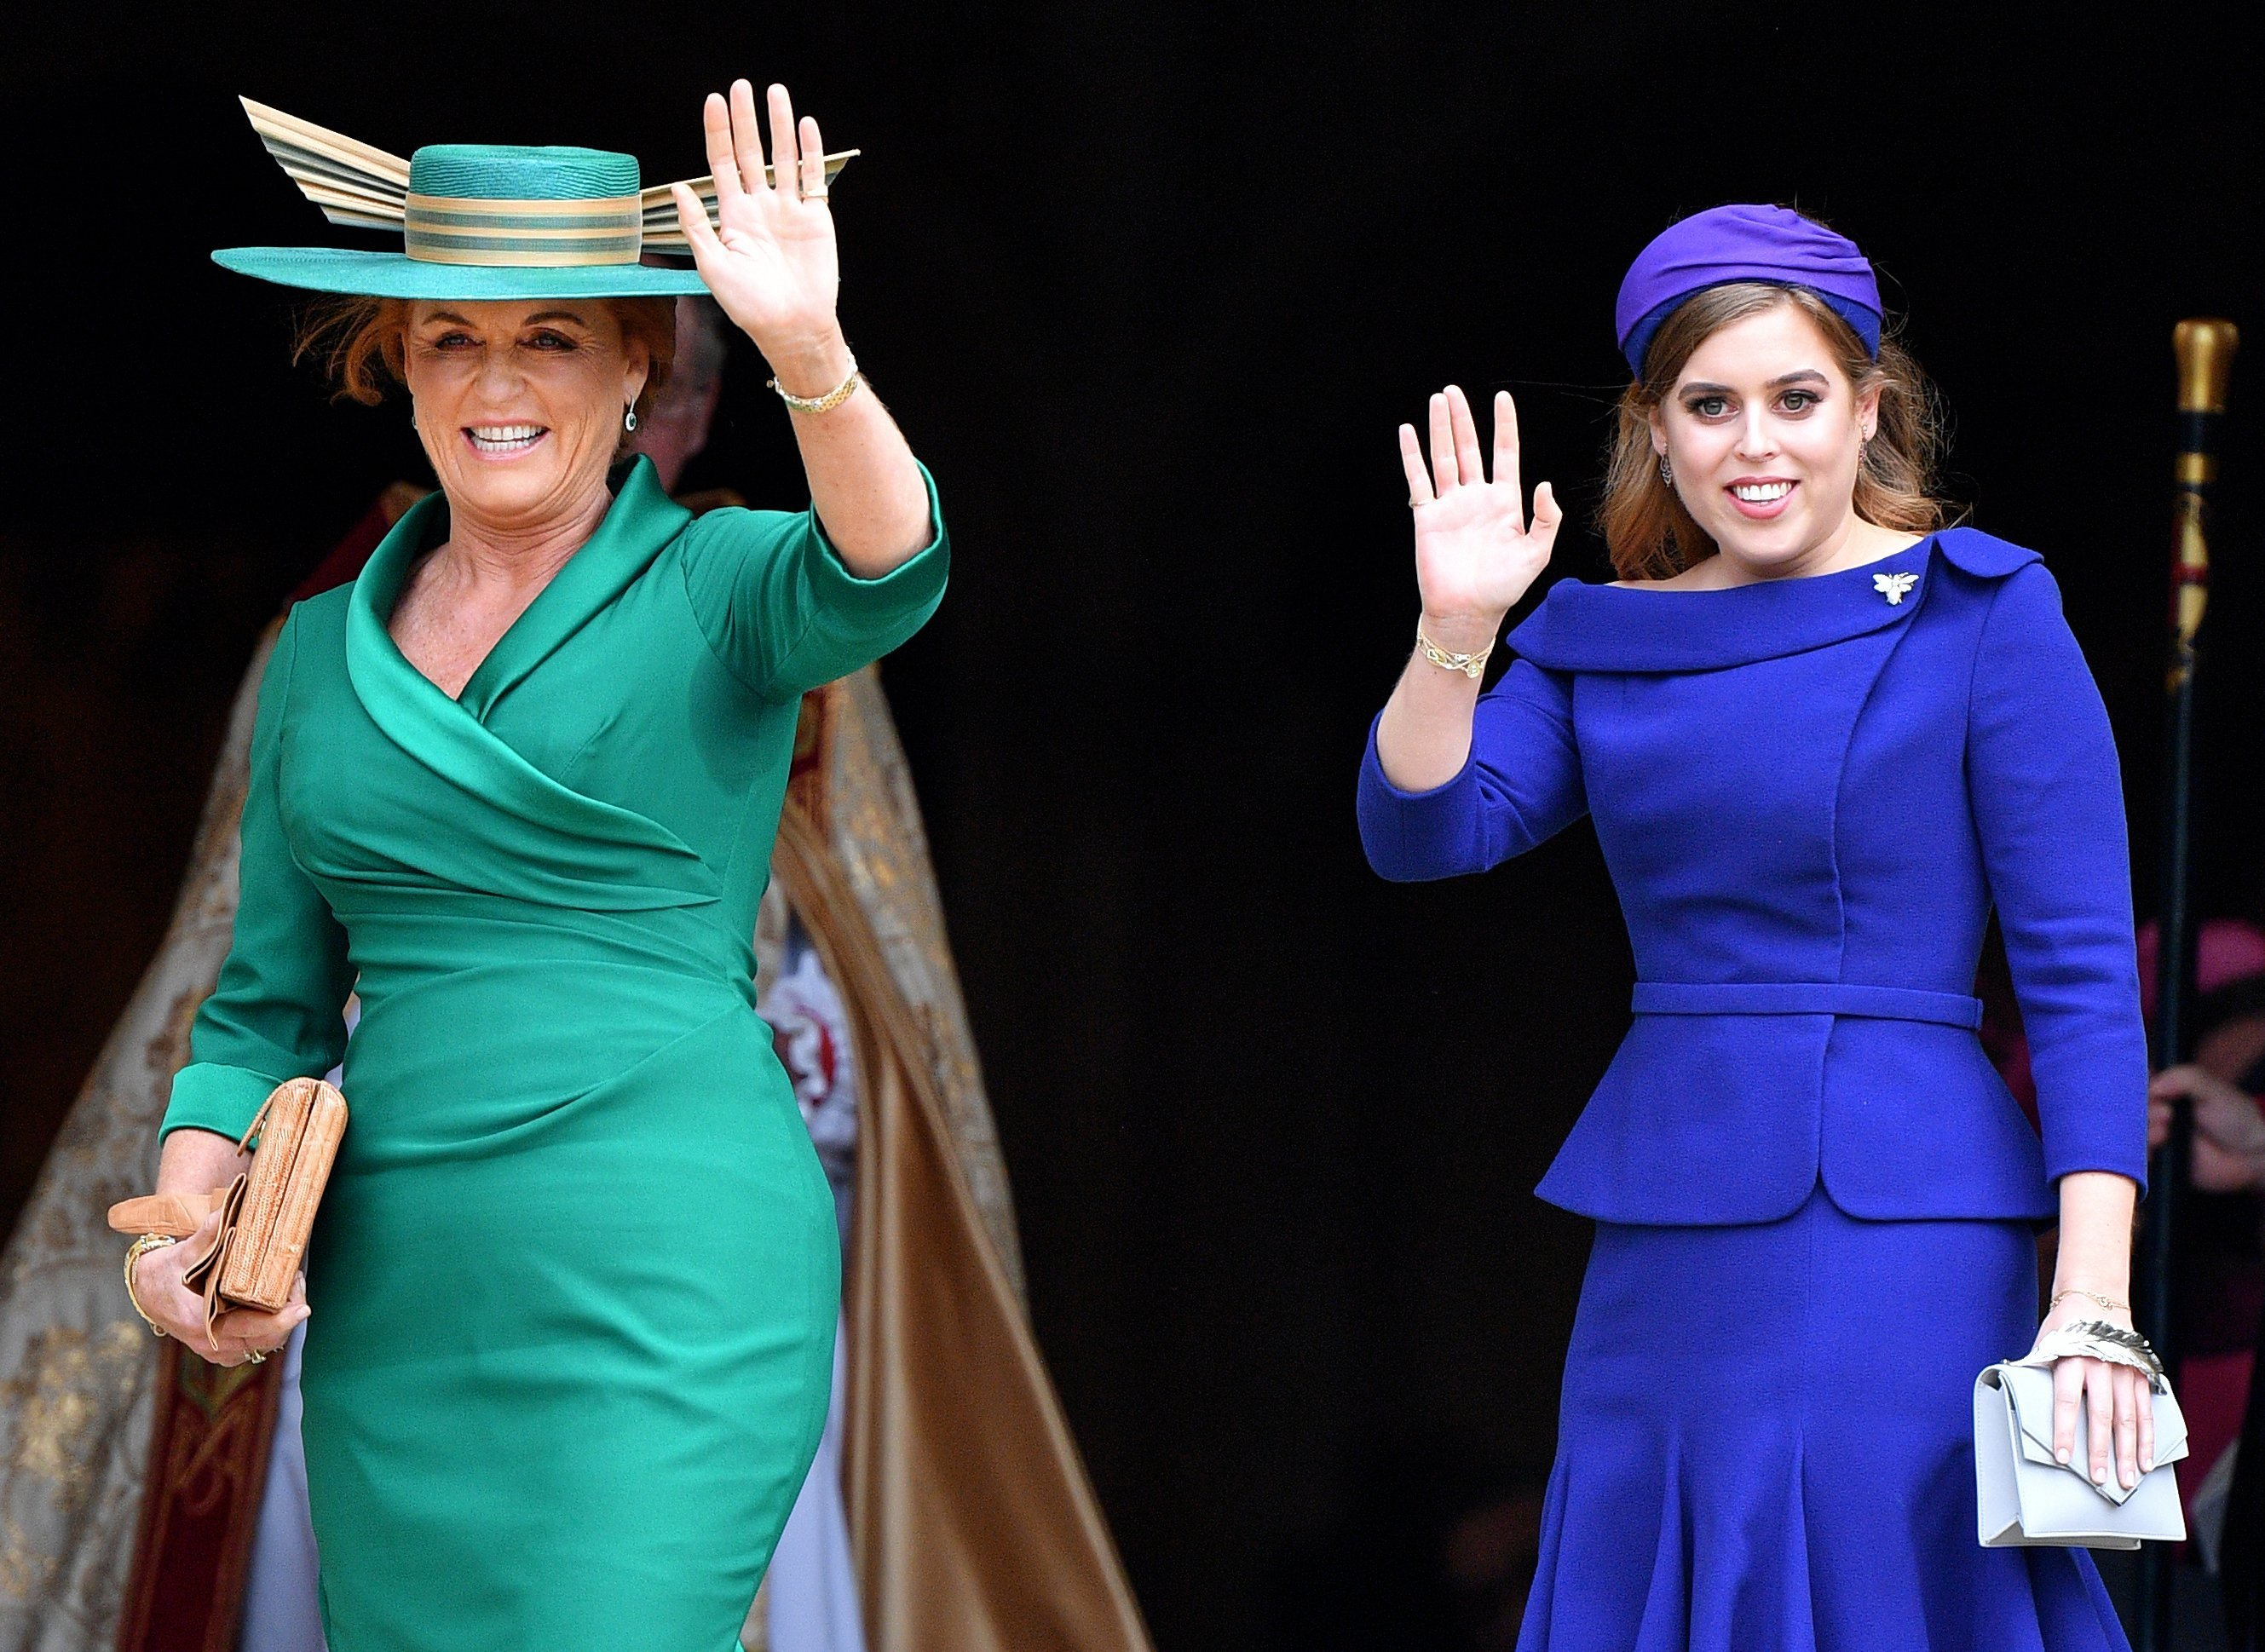 Sarah Ferguson and Princess Beatrice at Princess Eugenie's wedding | Photo: Getty Images